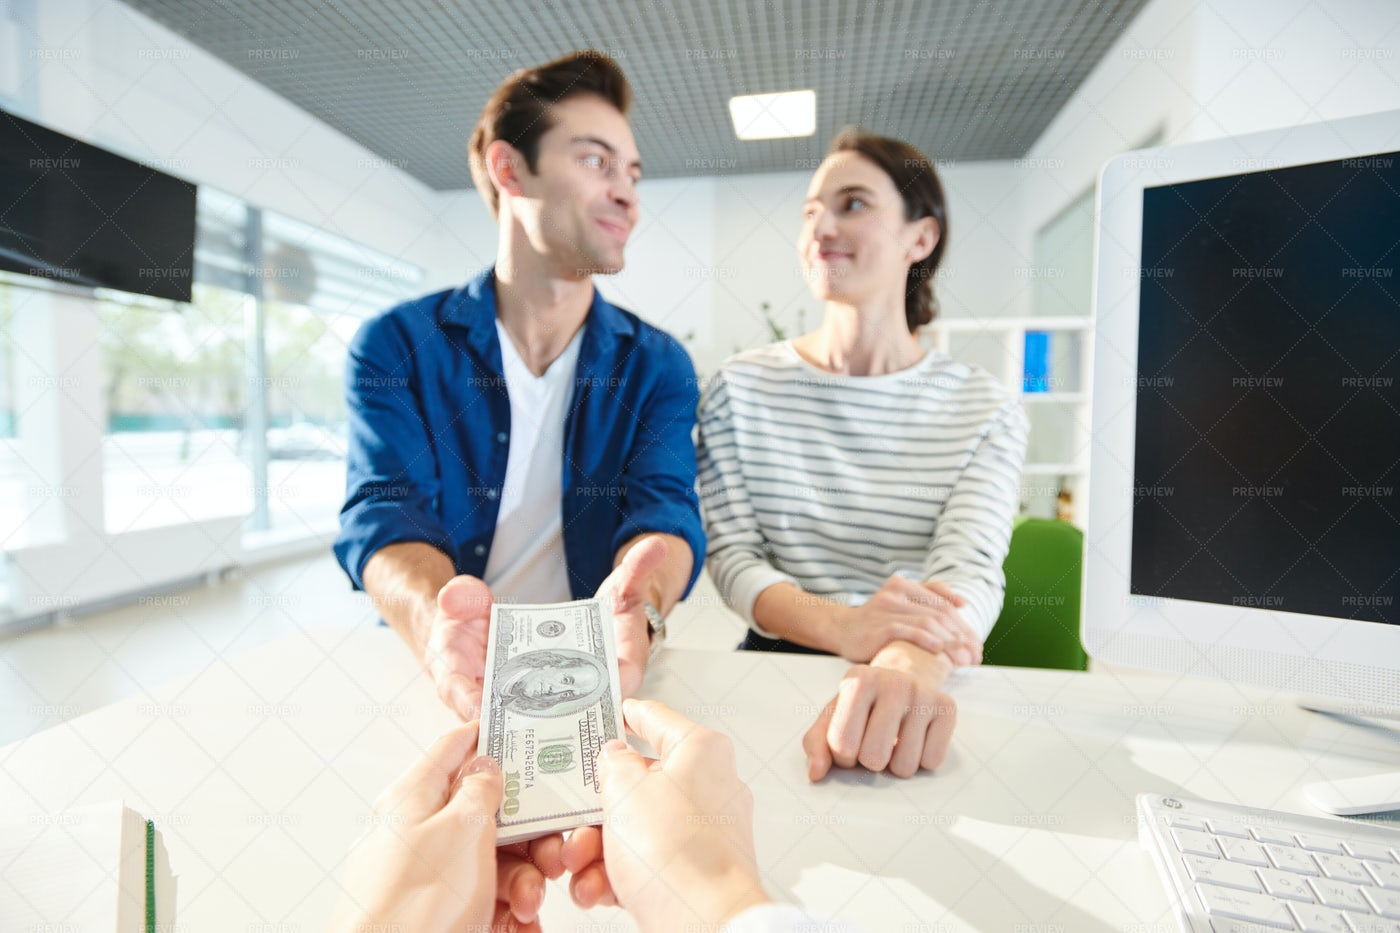 Taking Money From Bank To Live...: Stock Photos